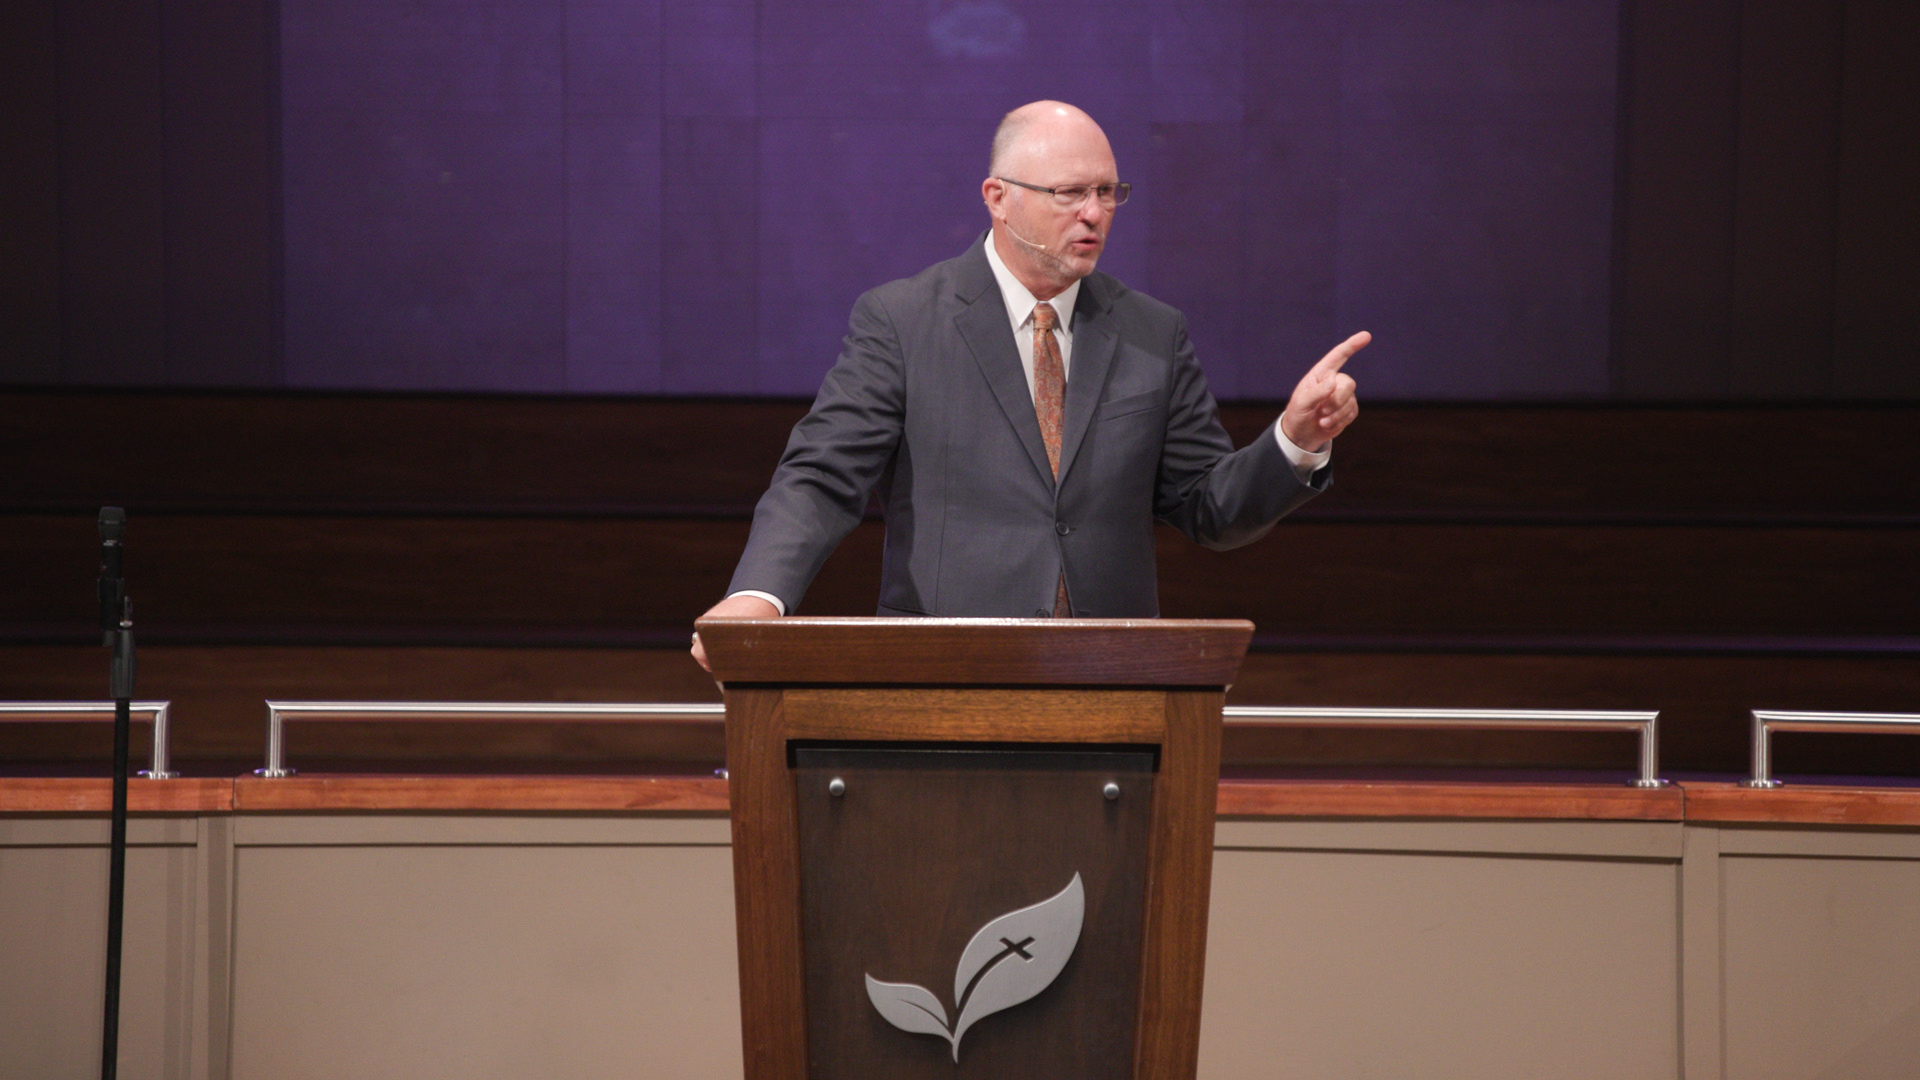 Pastor Paul Chappell: Steady Church